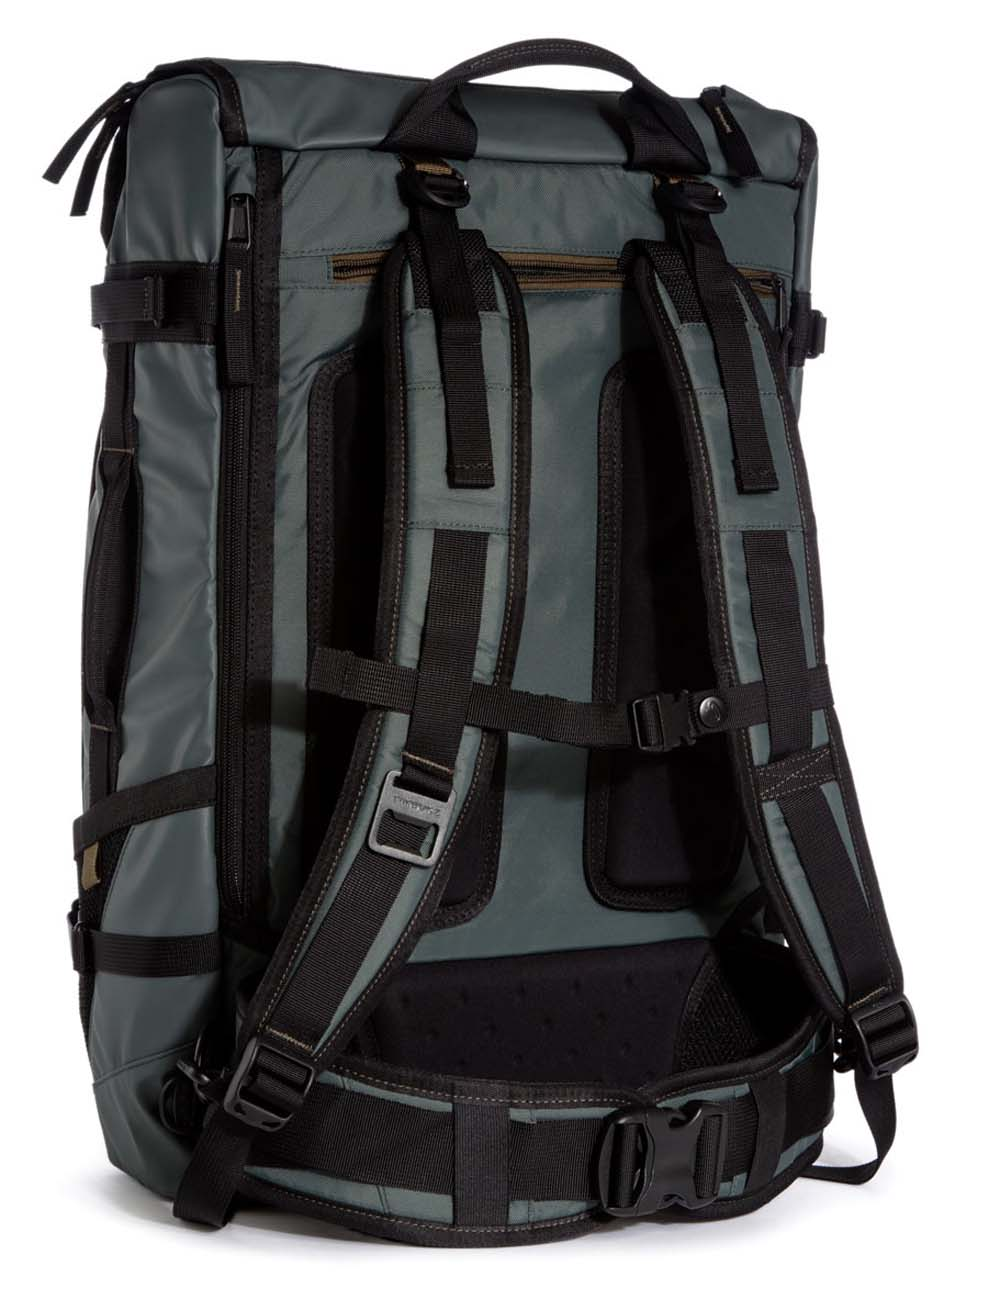 1e915c470f Timbuk2 - Aviator Convertible Travel Backpack - Walmart.com